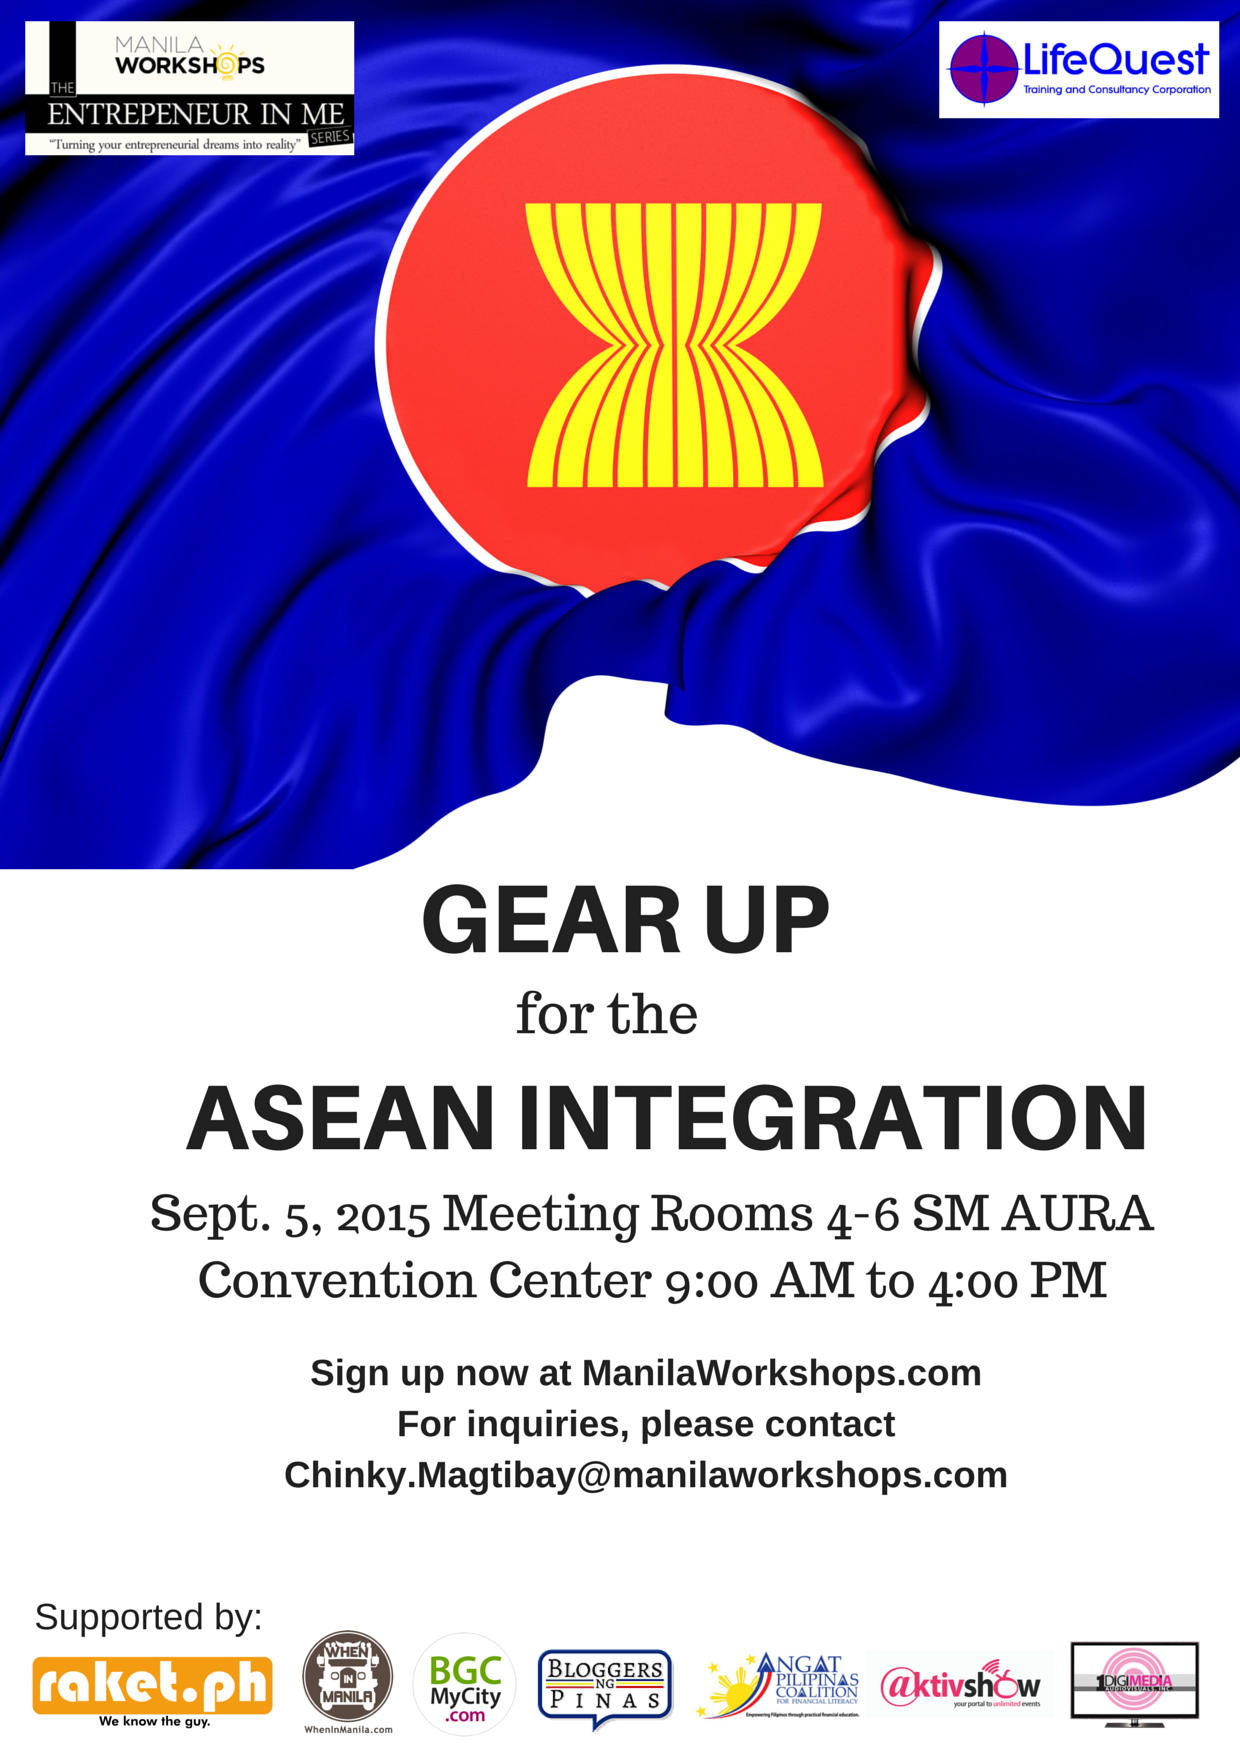 2015 asean integration Jakarta, 20 november 2015 – the asean integration report (air) 2015 provides a comprehensive analysis of the progress and achievements, including evaluating the impact, of implementation of the asean economic community (aec) blueprint since its adoption in 2007.